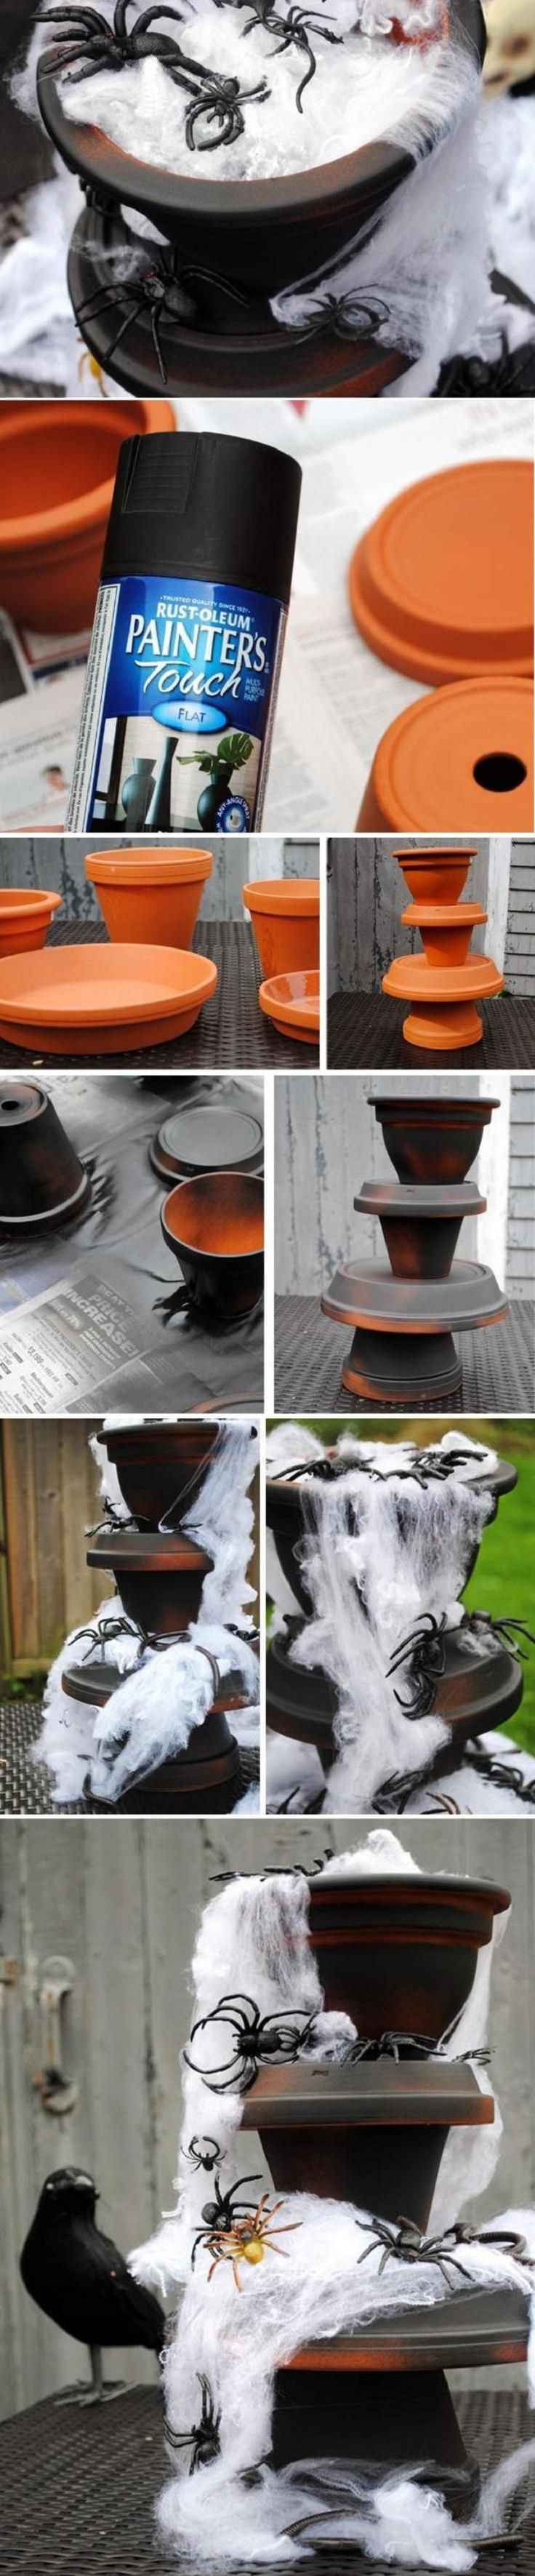 12 Sinister DIY Outdoor Halloween Decorations - GleamItUp